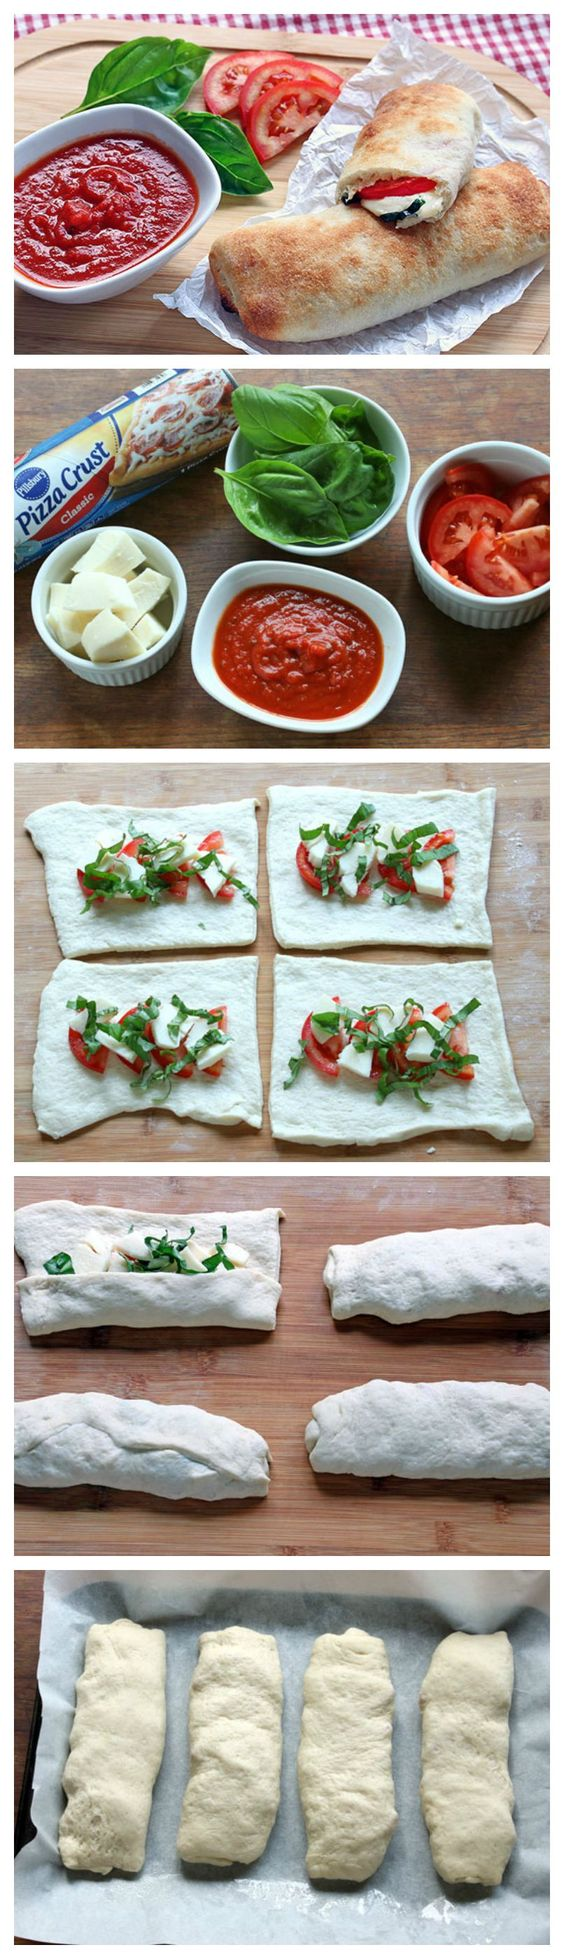 With just 5 ingredients and less than 10 minutes of prep, you'll be devouring these calzones in no time! Wrap them in foil and take one for lunch.